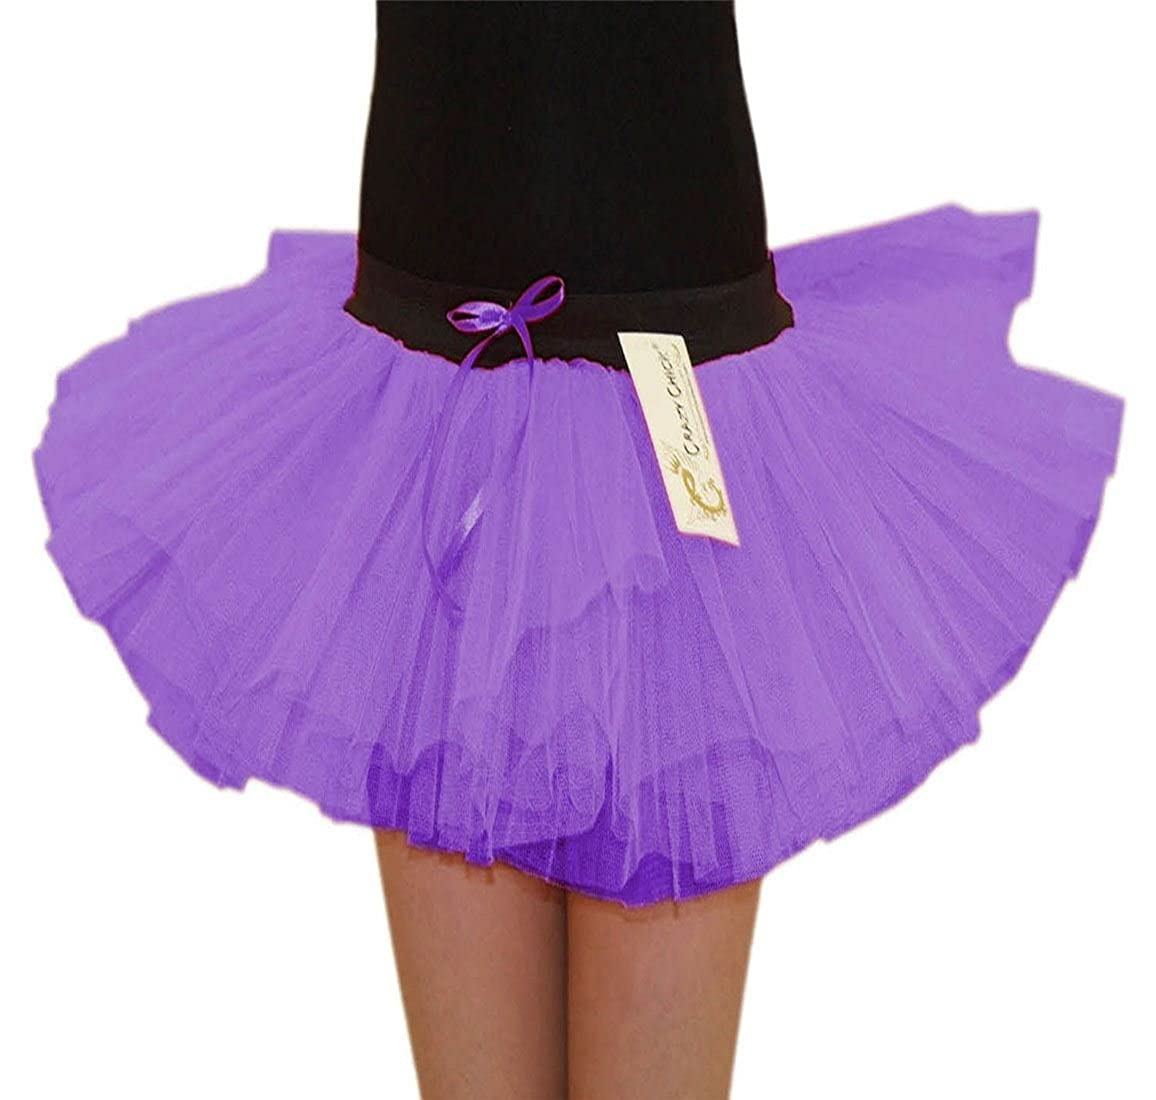 Rimi Hanger Girls 3 Layers Tutu Skirts Childrens 80s Dance Party Fancy Dress Accessory Skirt 5-10 Years